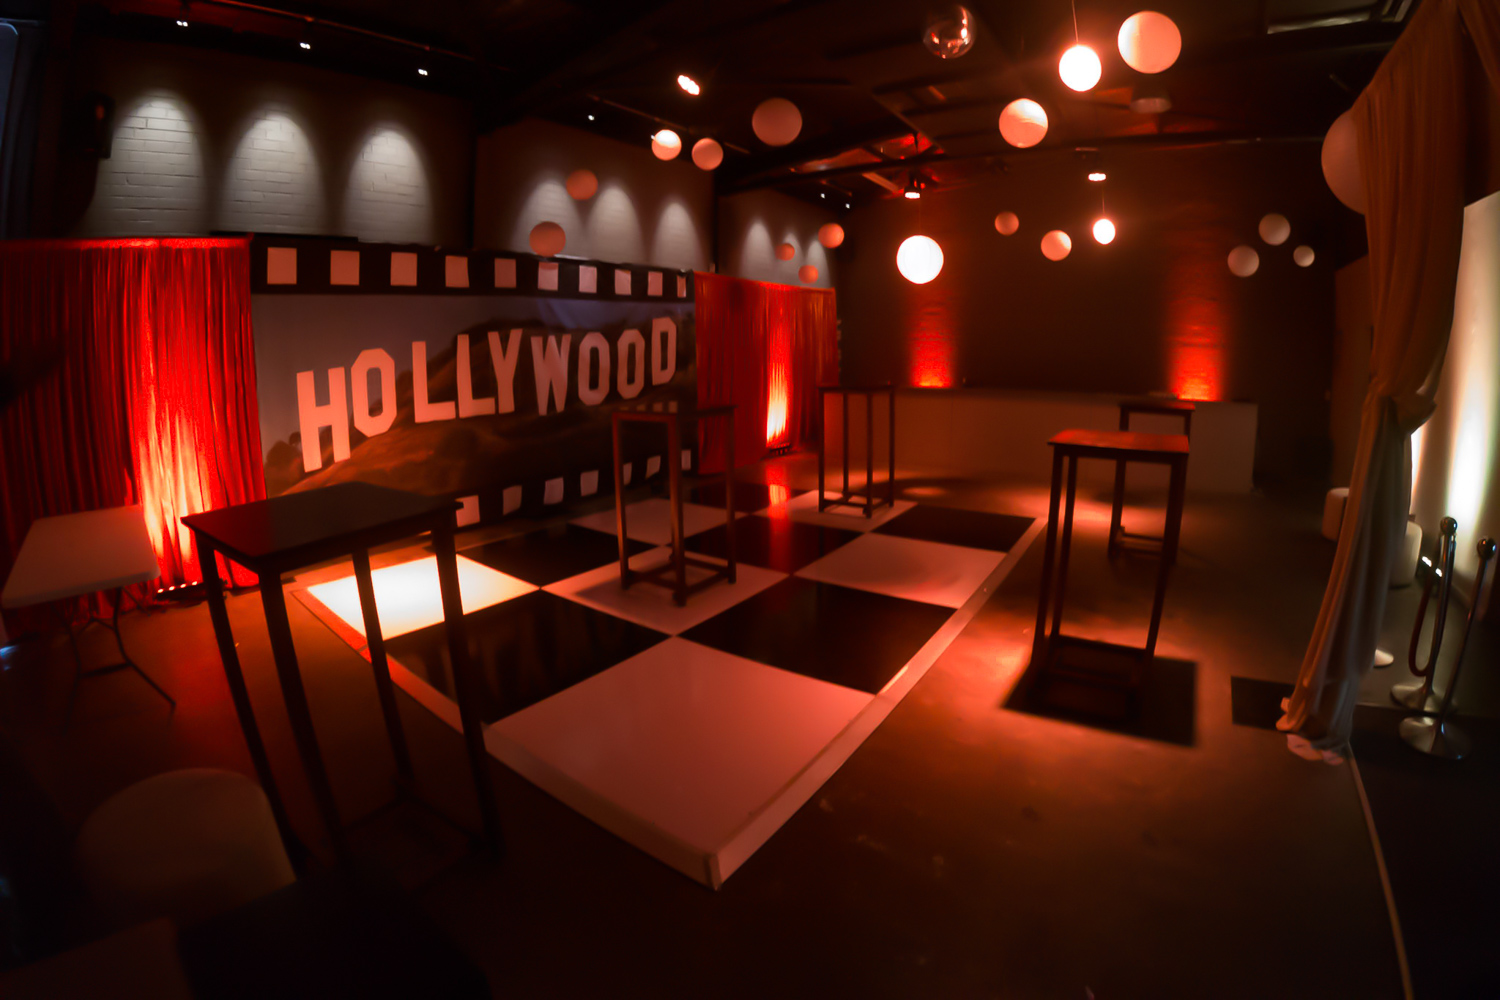 Hollywood Red Carpet Backdrop with uplighting.